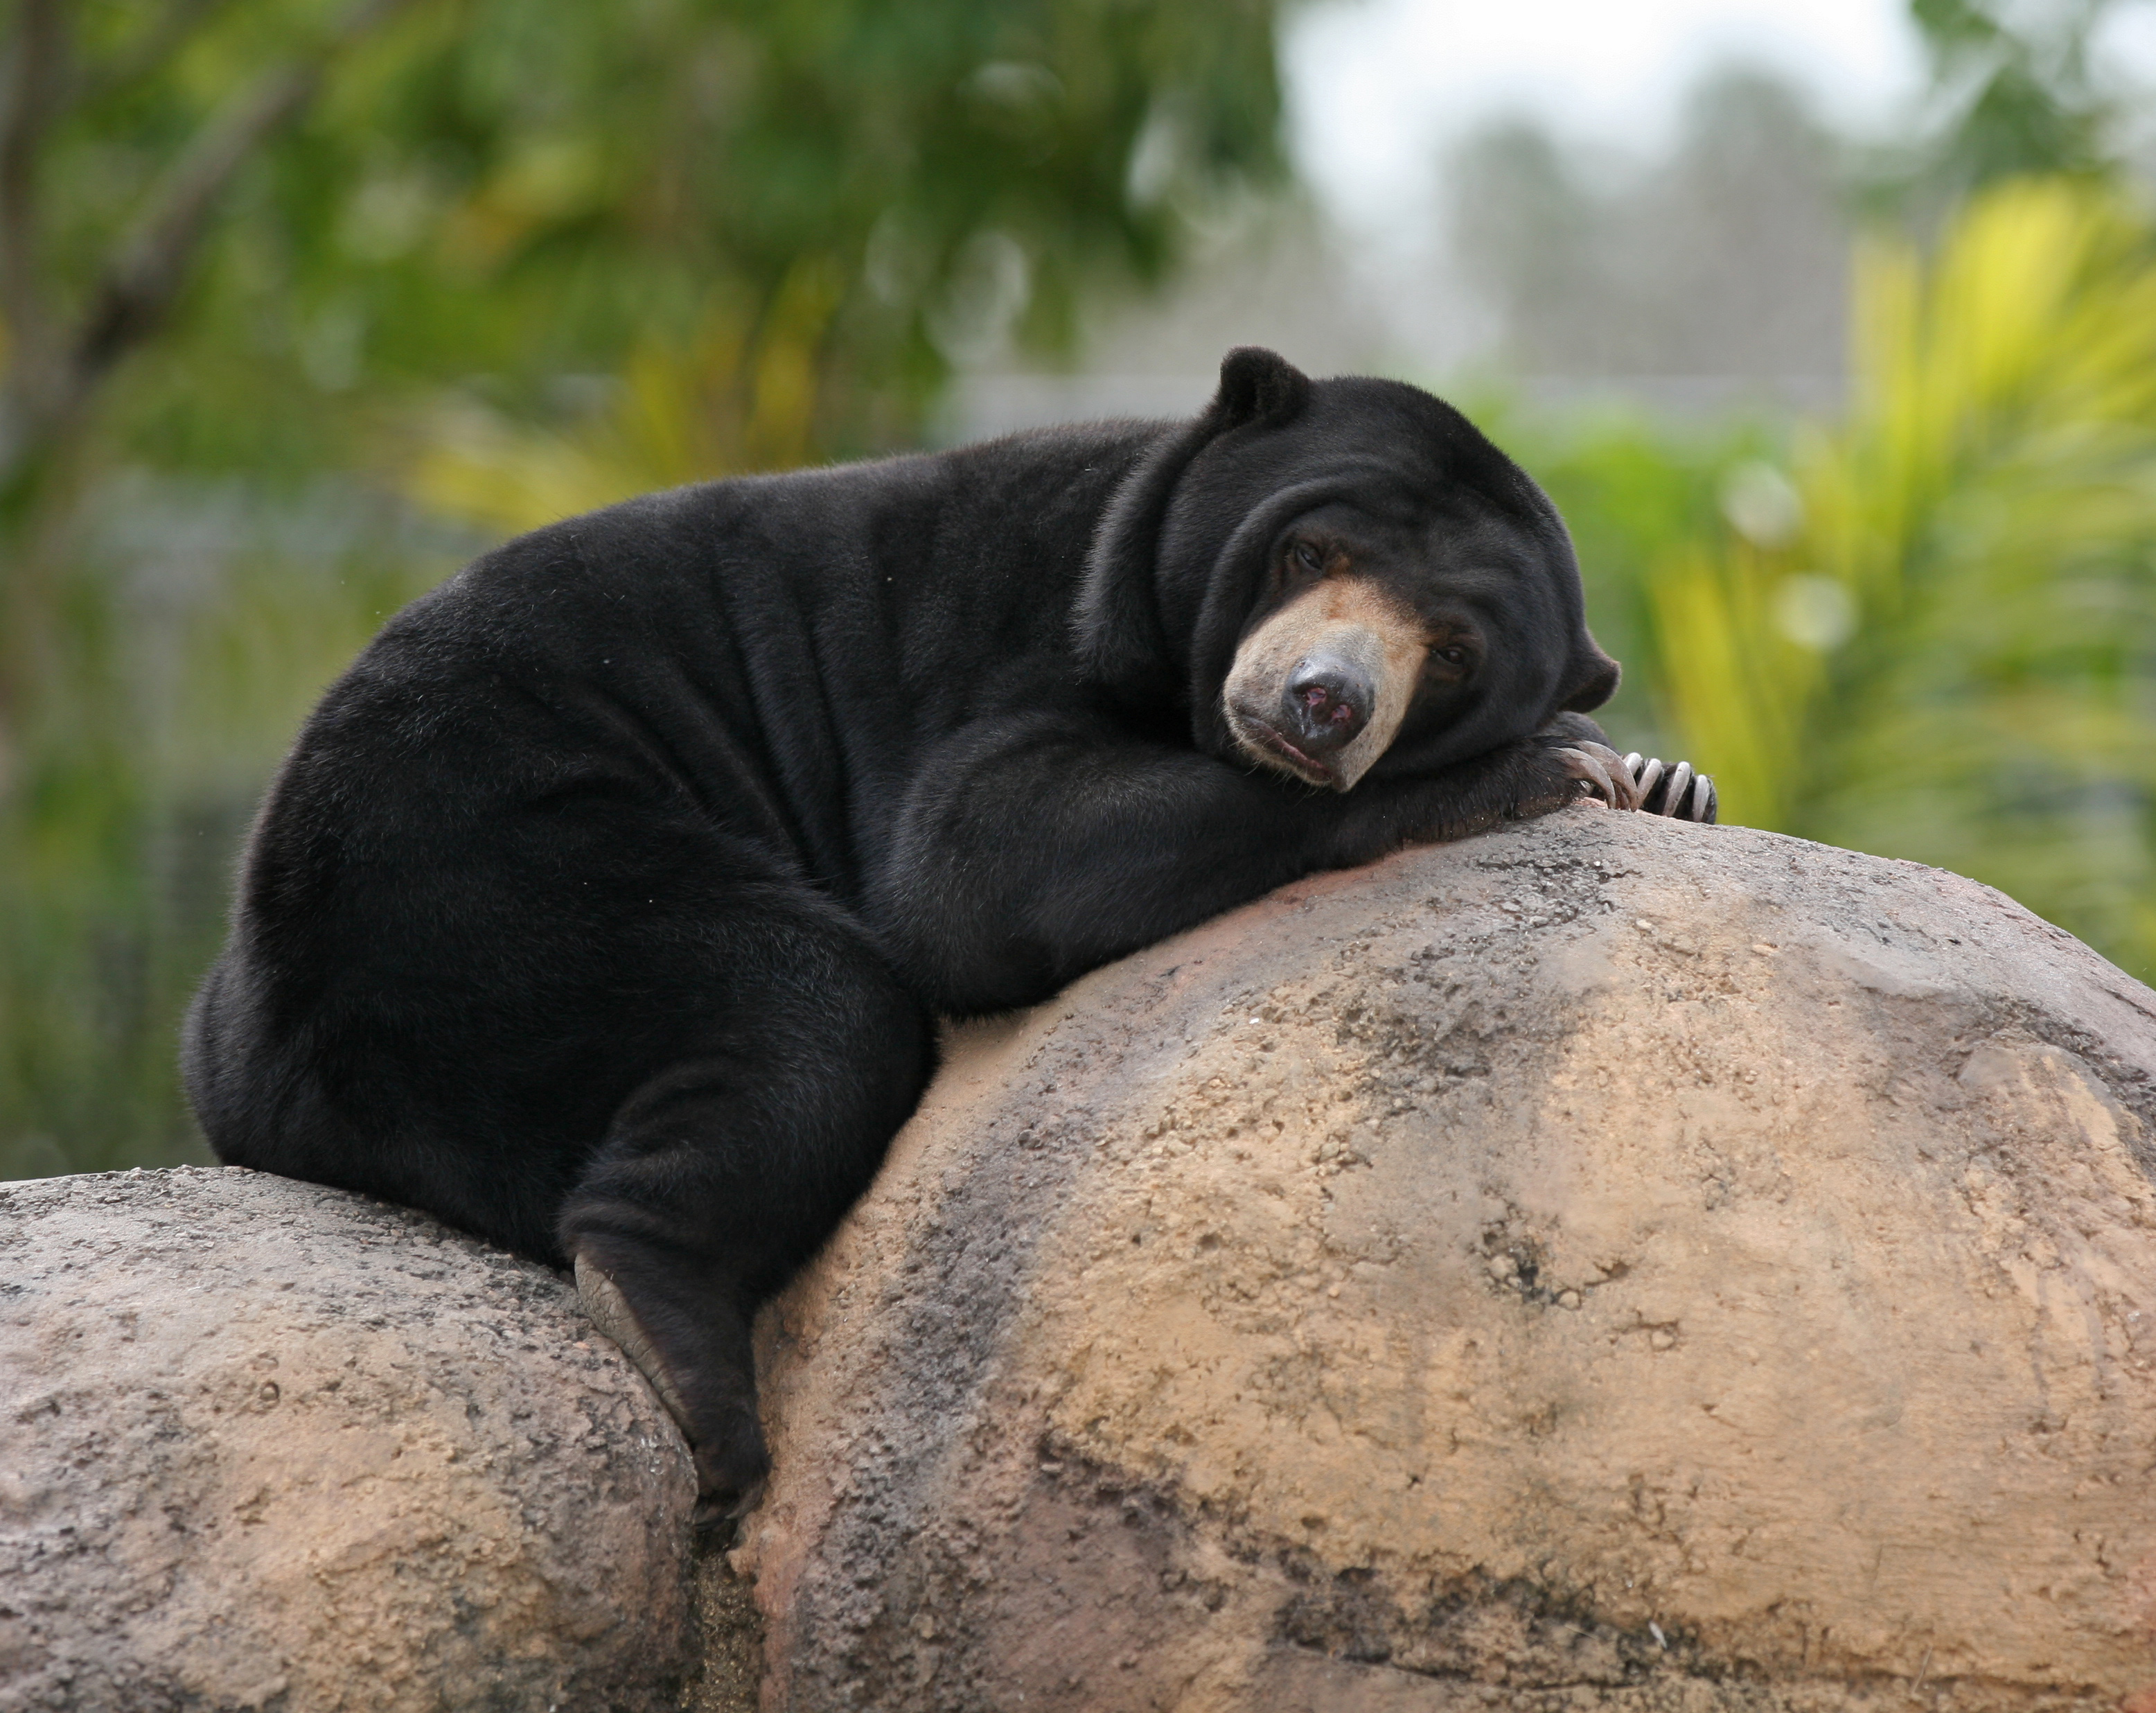 File:Malaysian Sun Bear.jpg - Wikimedia Commons